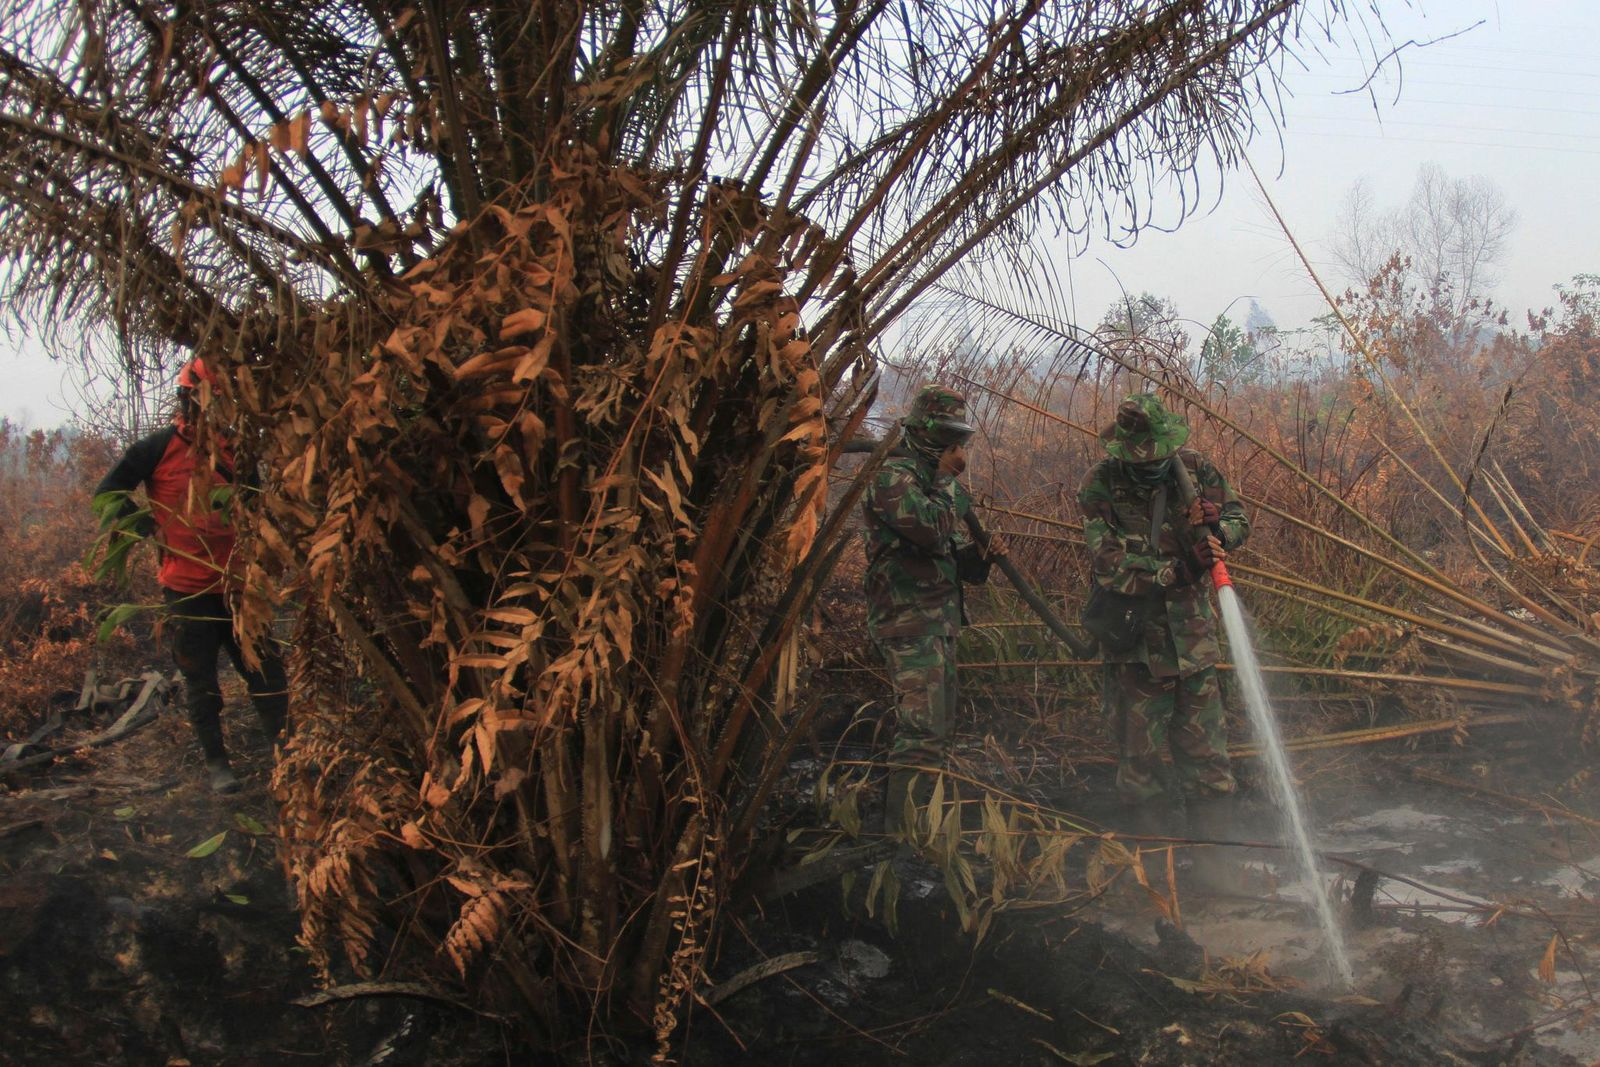 Soldiers spray water to extinguish forest fire at a peatland field in Kampar, Riau province, Indonesia, Tuesday, Sept. 17, 2019. Indonesian authorities have deployed more personnel and aircraft to battle forest fires that are spreading a thick, noxious haze around Southeast Asia. (AP Photo/Rafka Majjid)